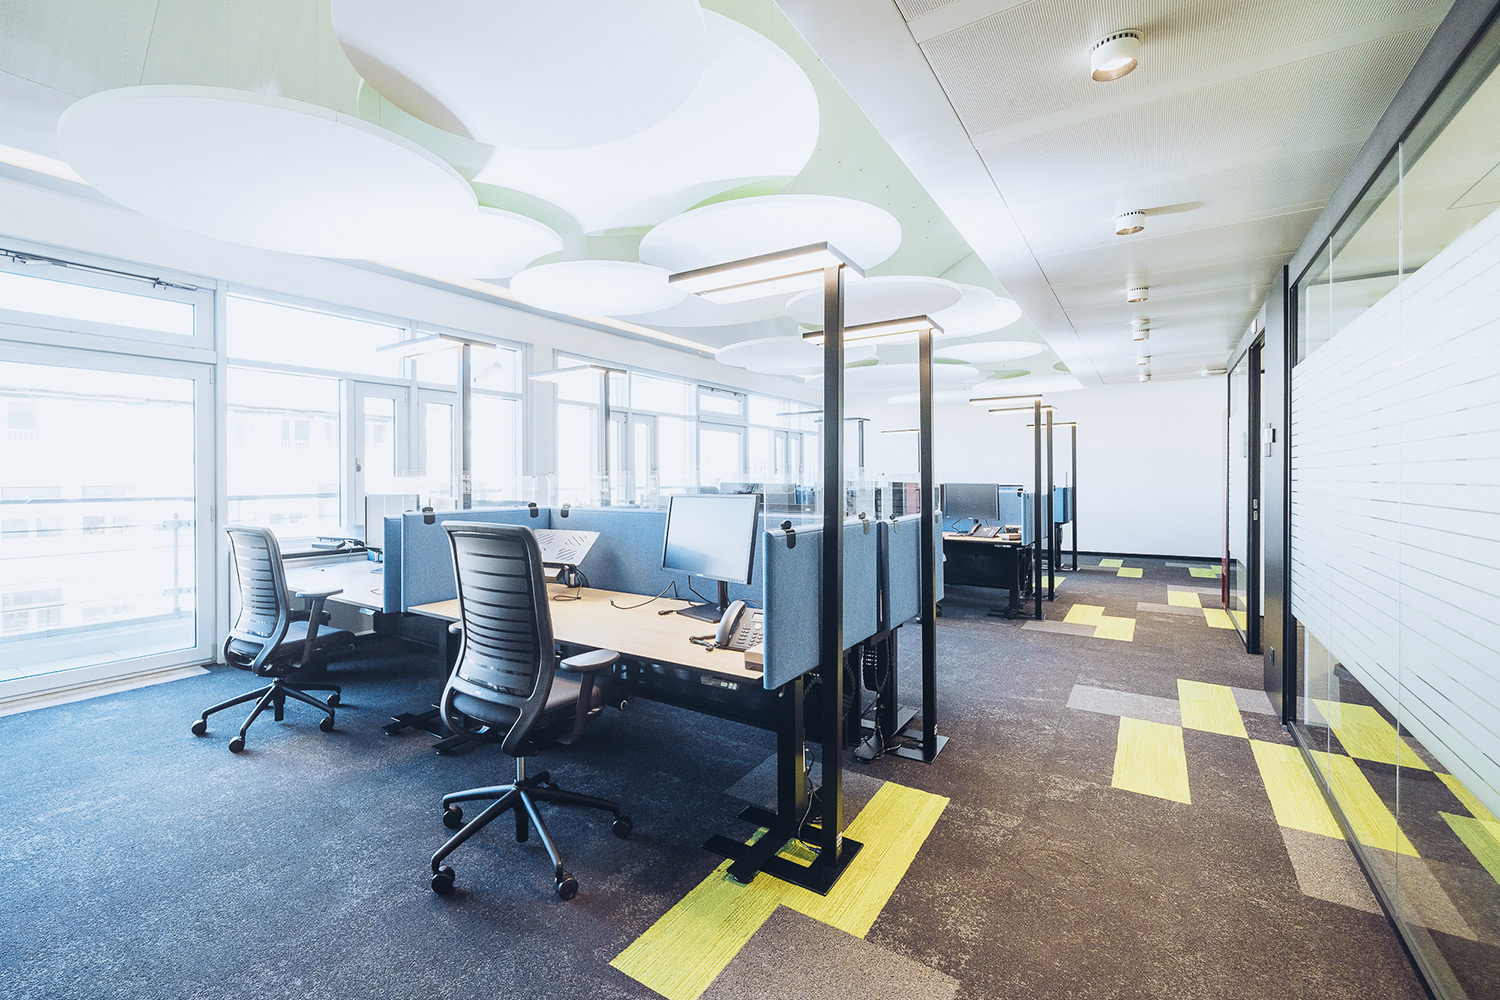 SWICA, one of Switzerland's leading healthcare and insurance organizations, retained WSDG to create an efficient and acoustically pleasant open space environment. Open office.